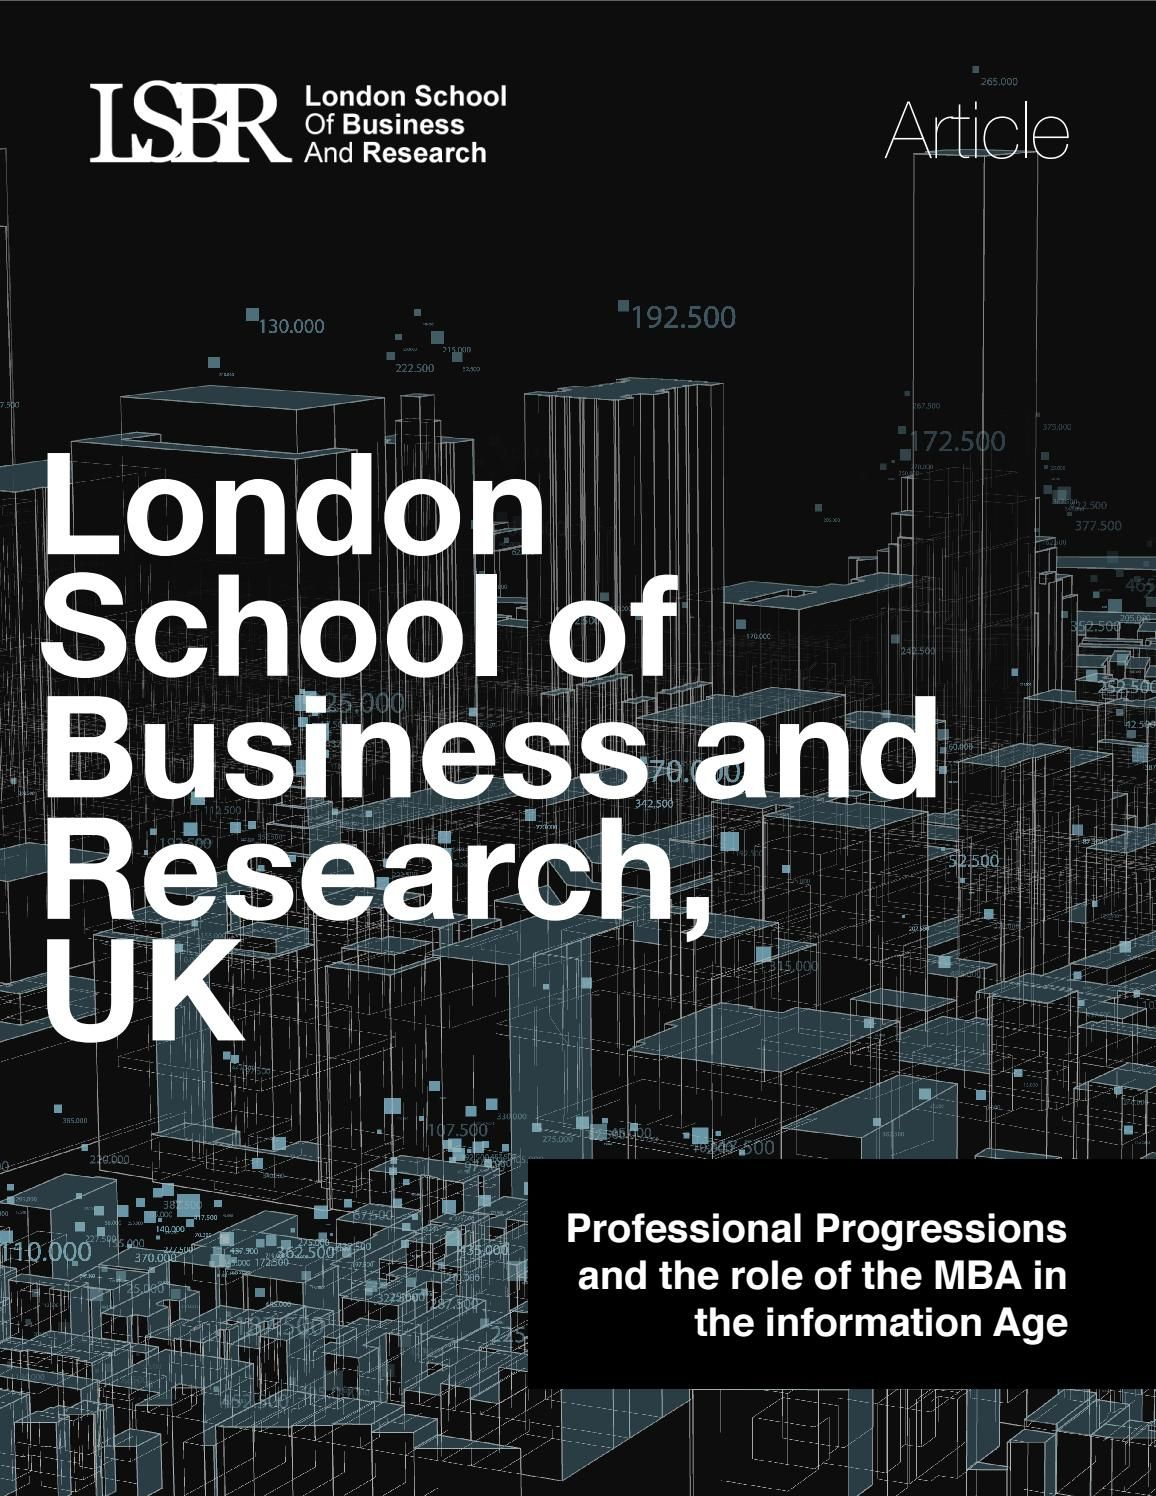 Professional Progressions and the role of the MBA in the